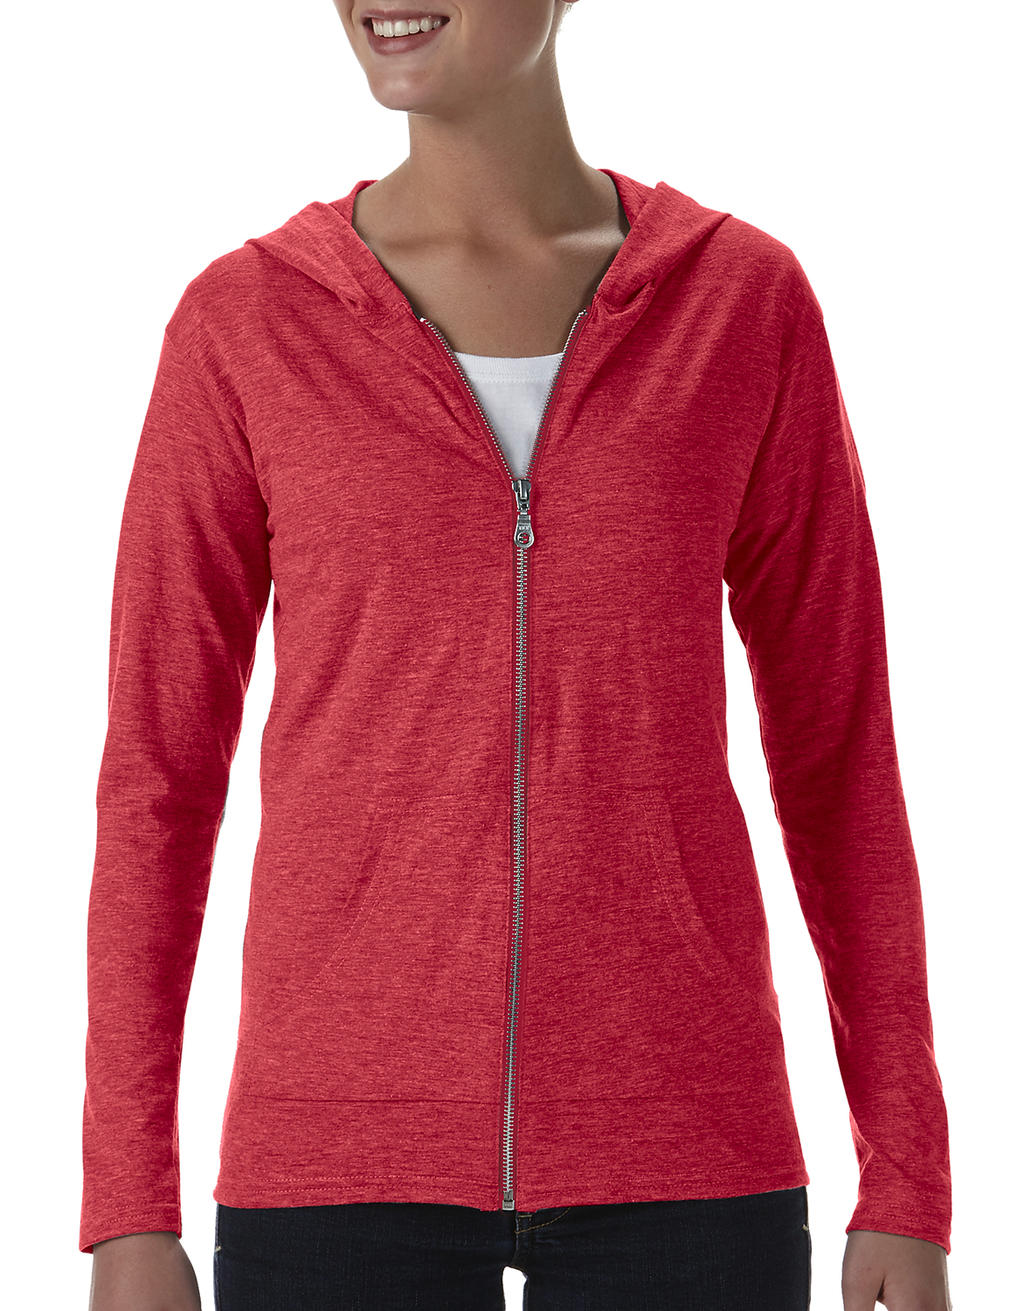 Anvil womens tri-blend full-zip hooded jacket rood